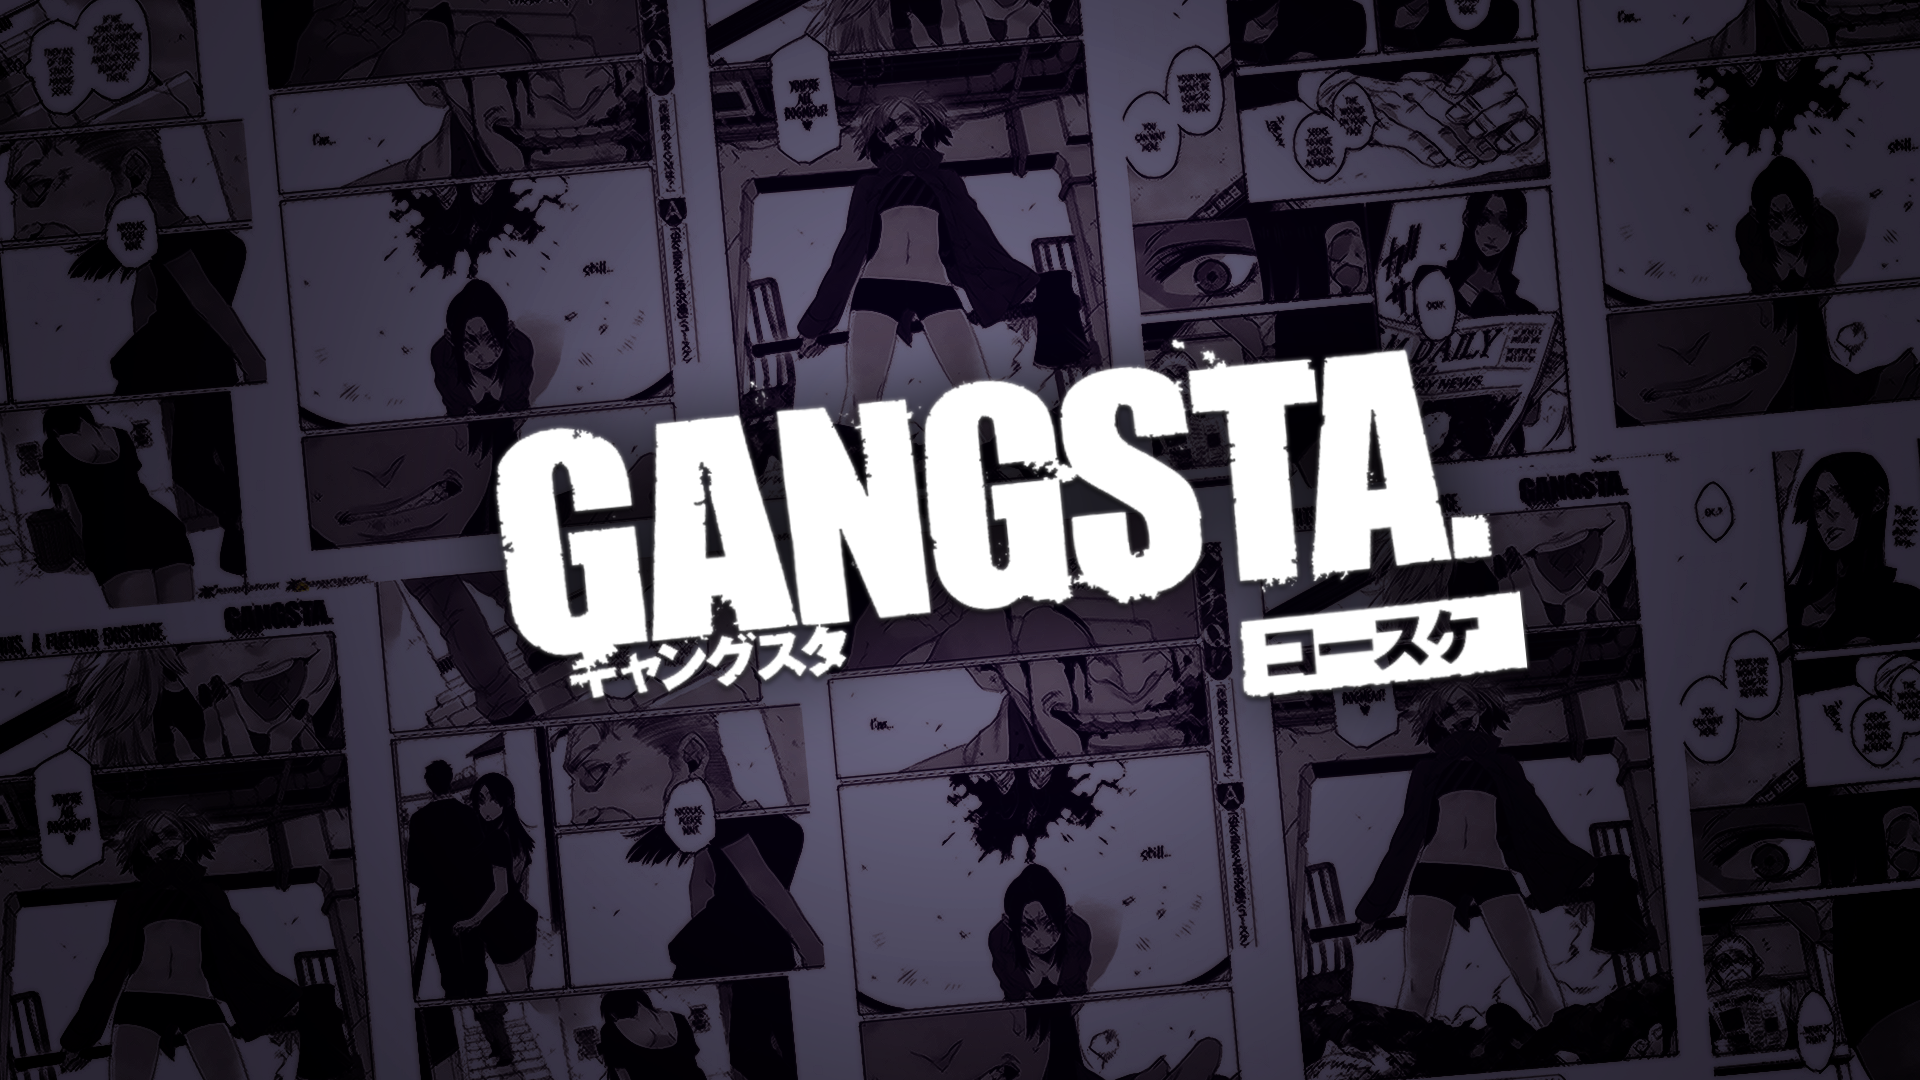 hd wallpaper background id676663 1920x1080 anime gangsta 17 like favorite